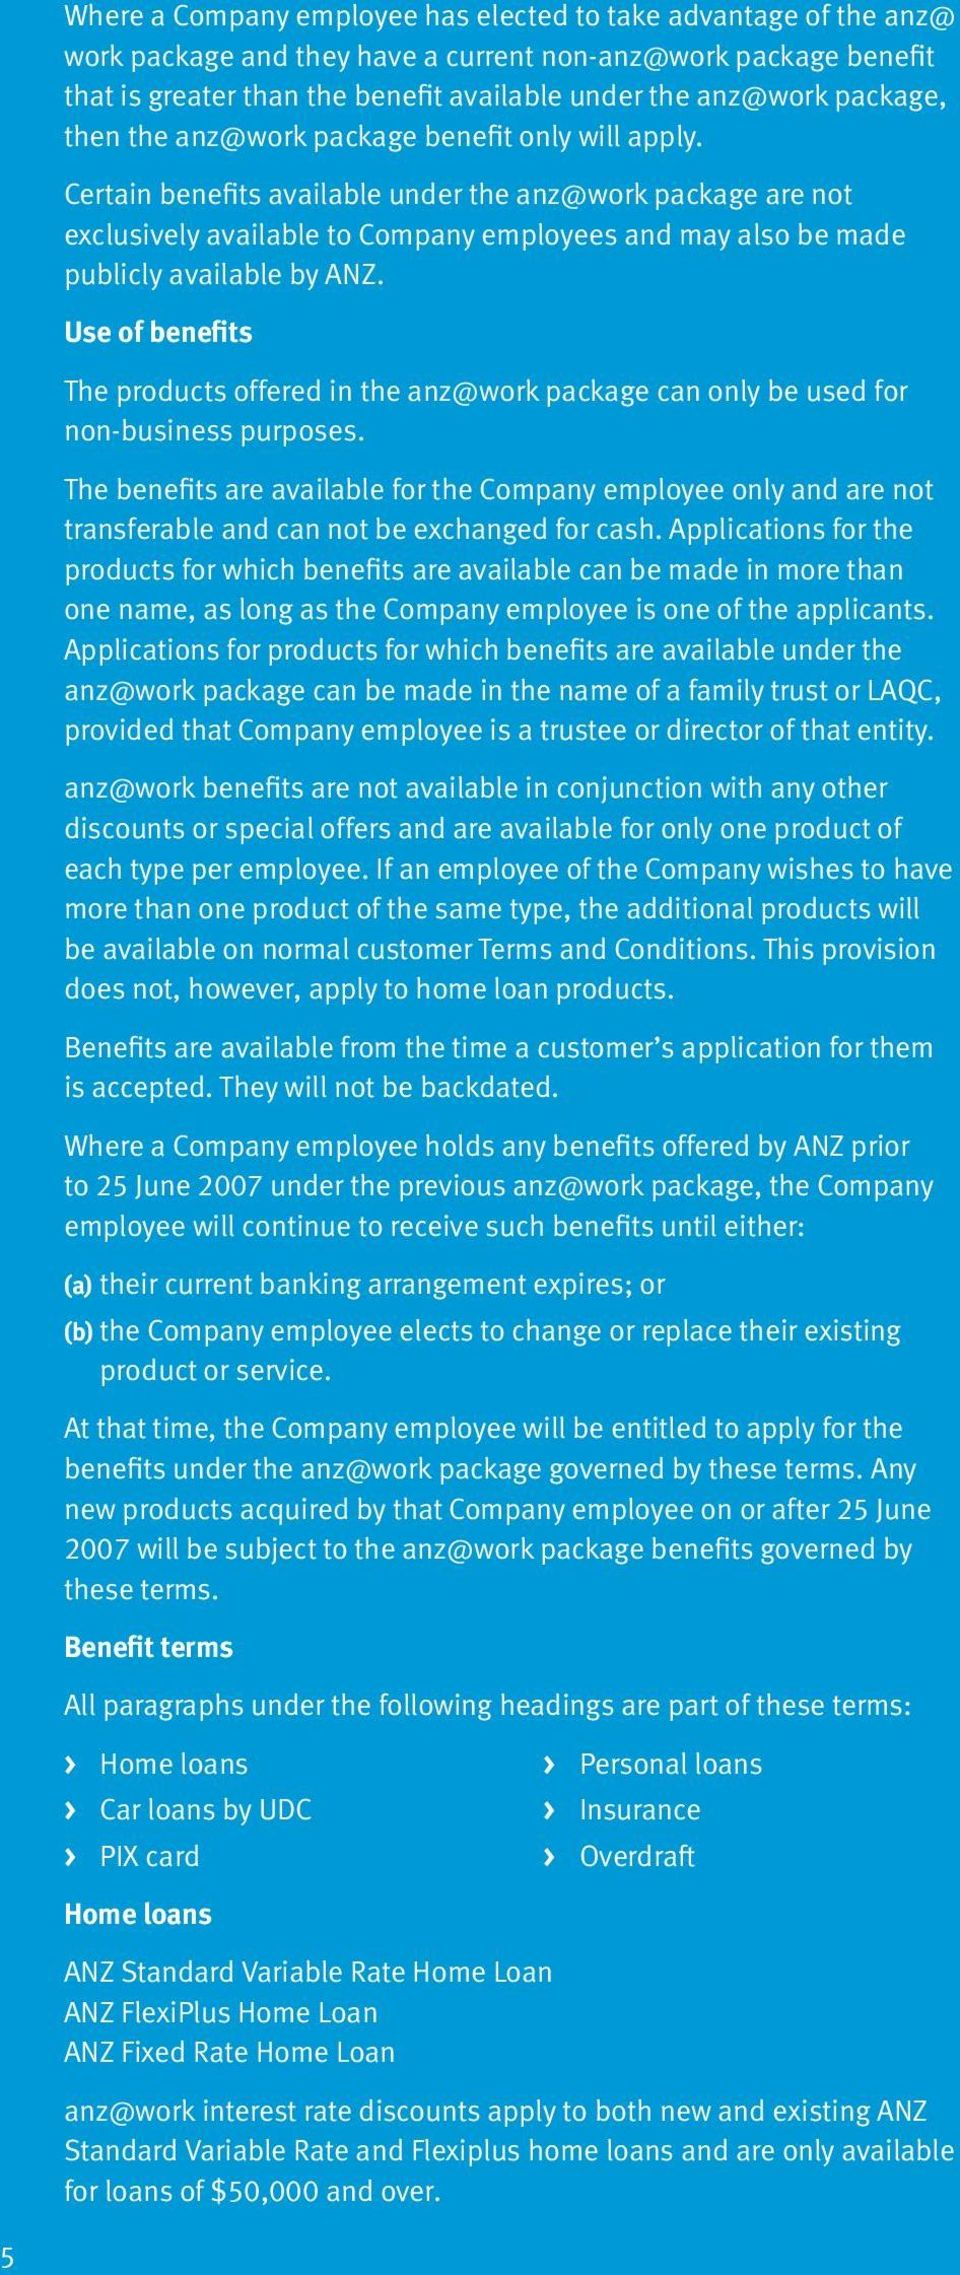 Certain benefits available under the anz@work package are not exclusively available to Company employees and may also be made publicly available by ANZ.